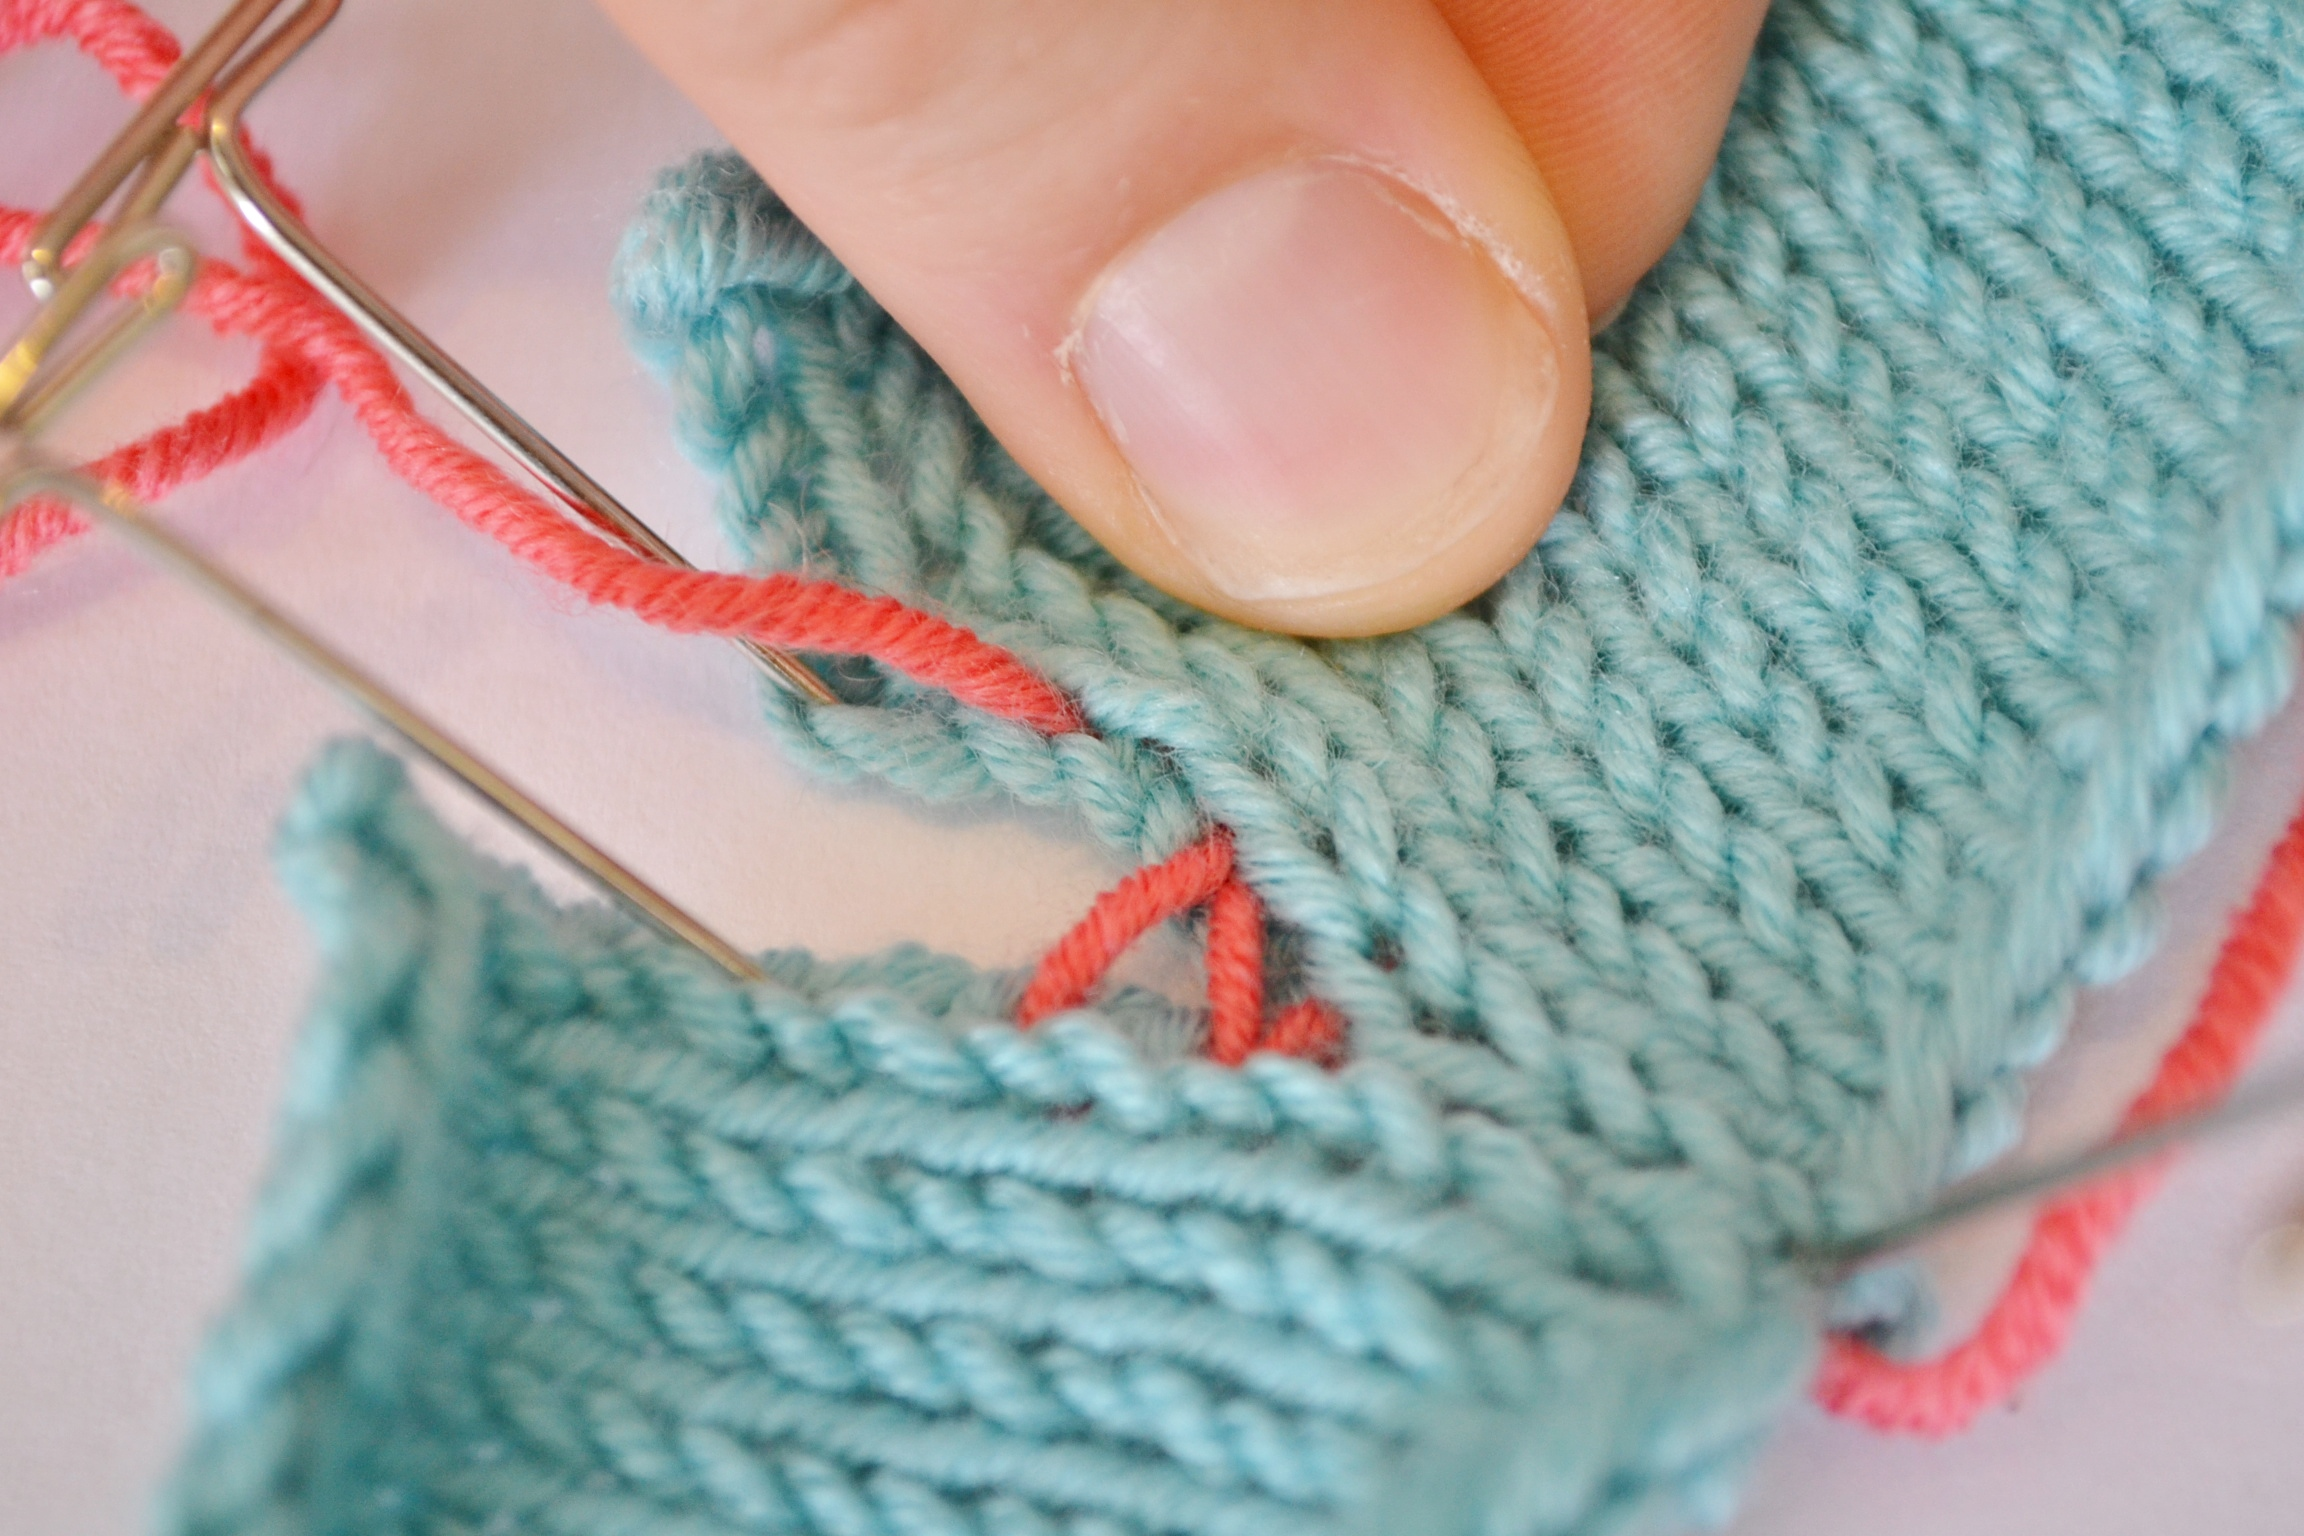 How To Sew Invisible Vertical Seams In Knitting With Mattress Stitch Amanda Schwabe